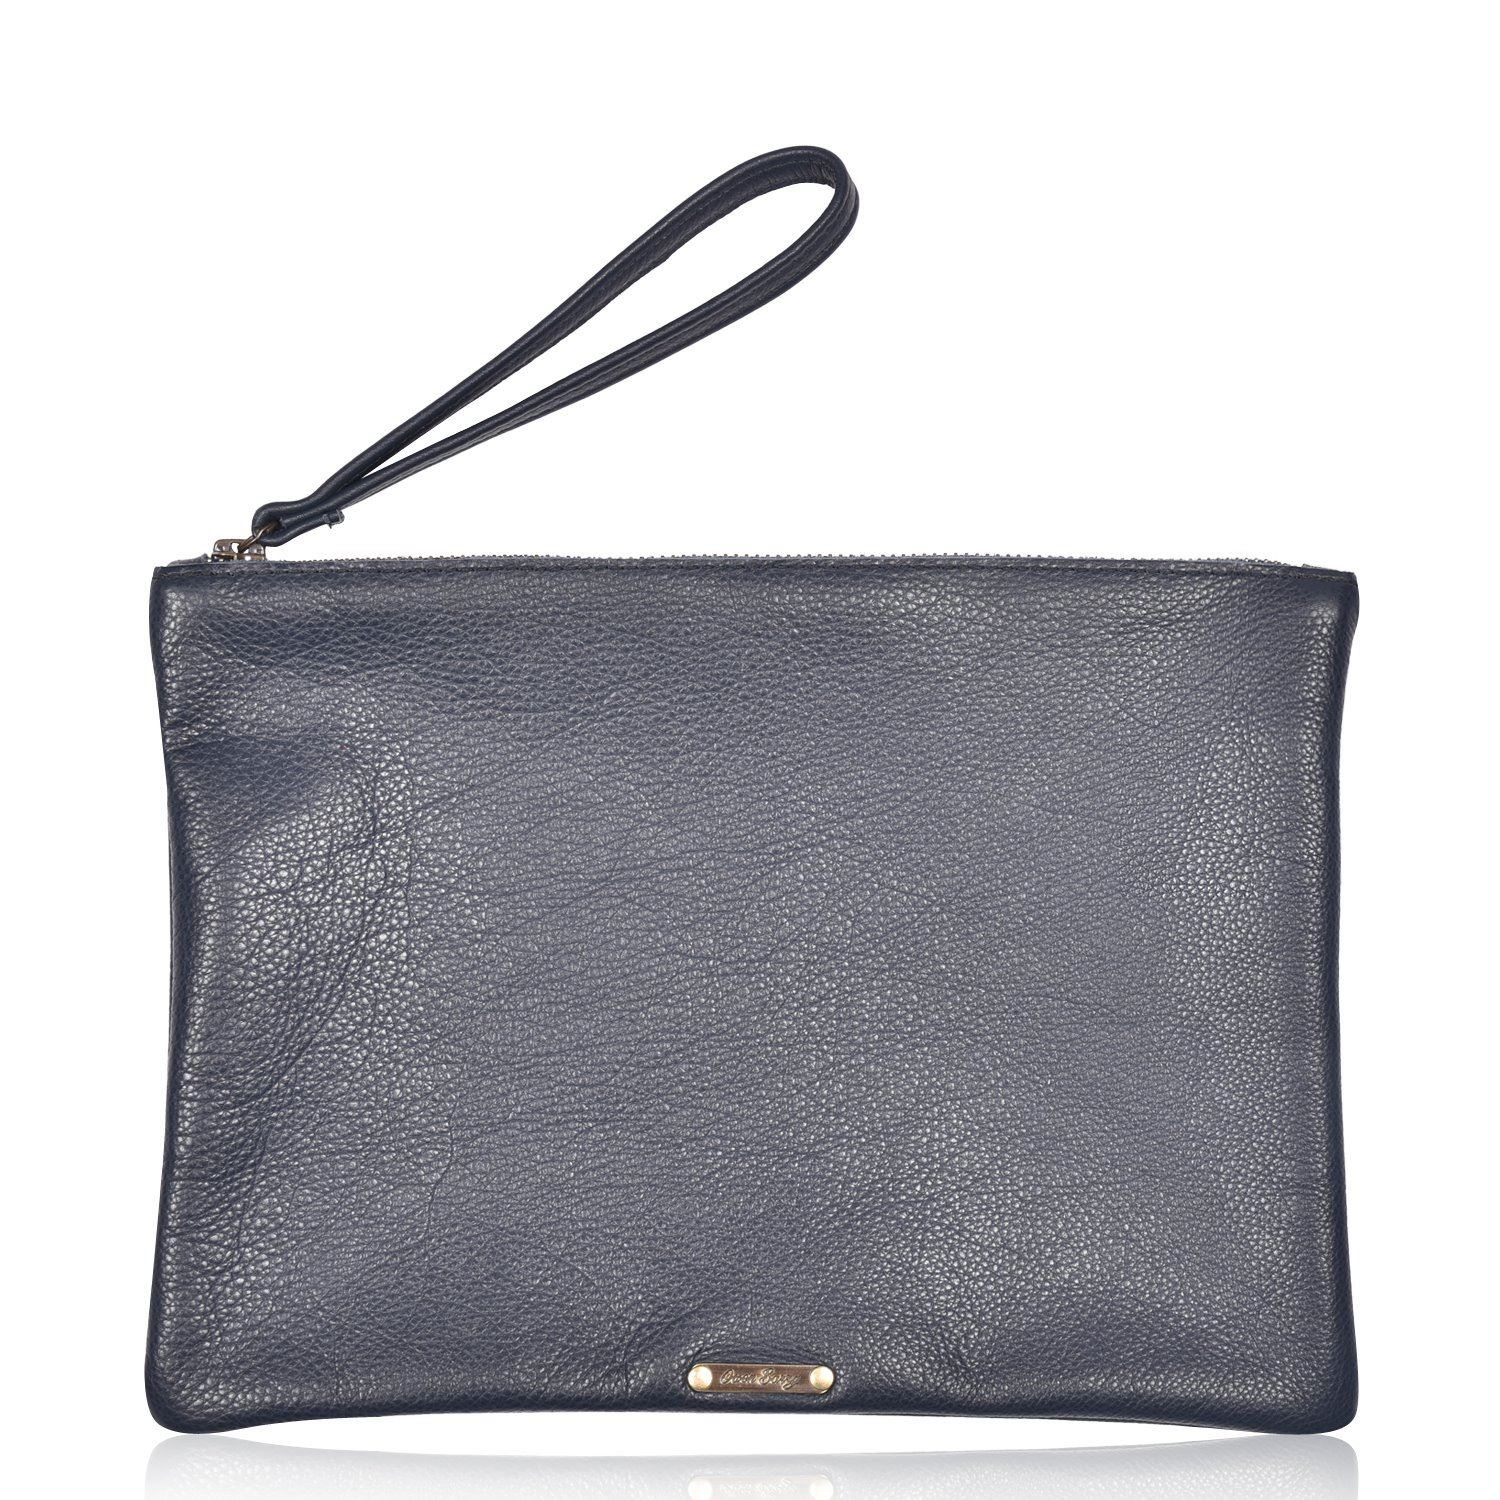 Leather Clutch Purse - Bambi